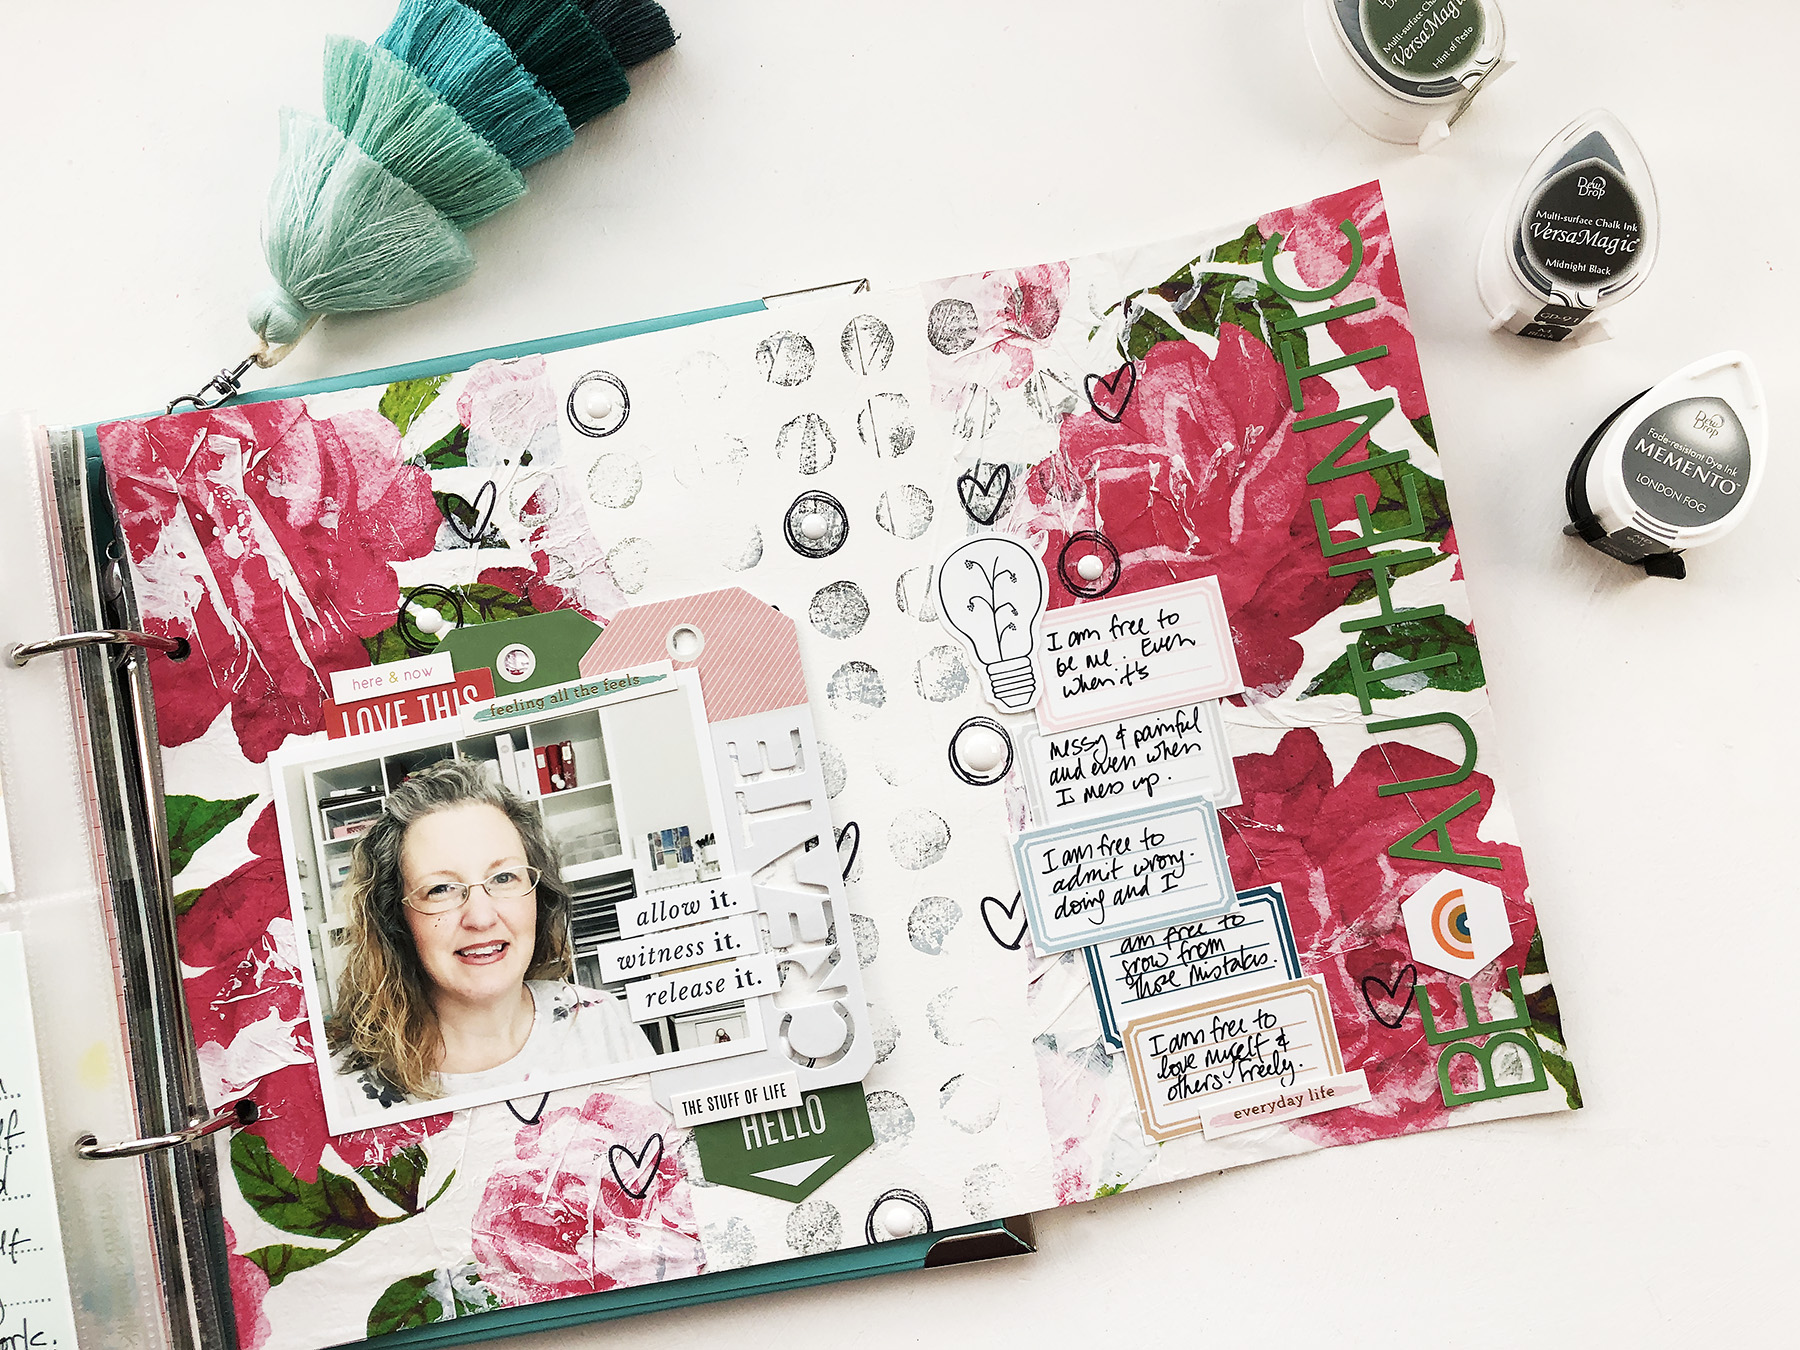 Light The Path - June 2020 Art Journal Layout